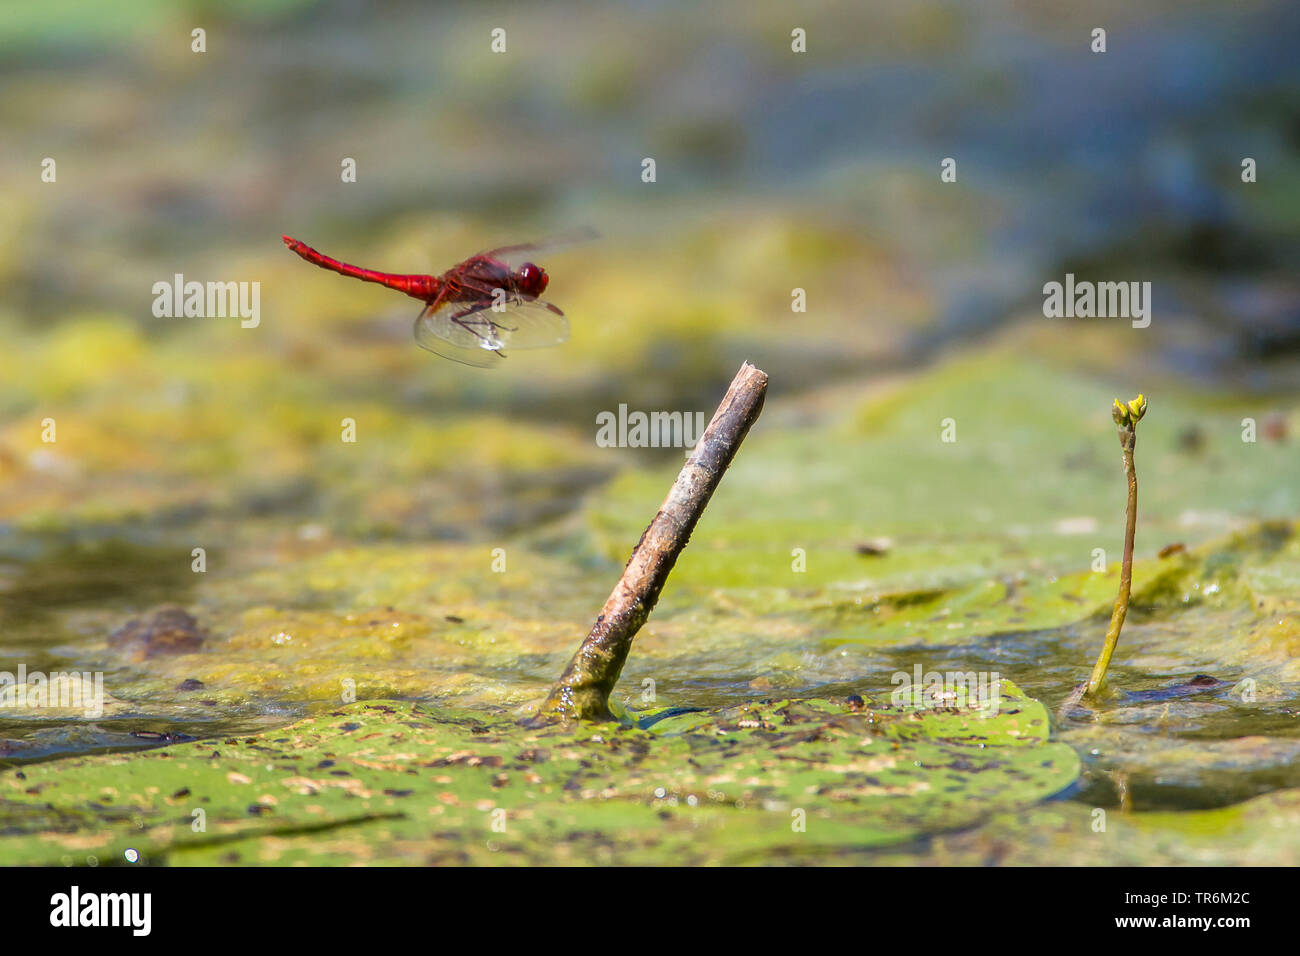 Broad Scarlet, Common Scarlet-darter, Scarlet Darter, Scarlet Dragonfly (Crocothemis erythraea, Croccothemis erythraea), male in approach on a lookout in the water, Germany, Bavaria, Niederbayern, Lower Bavaria Stock Photo